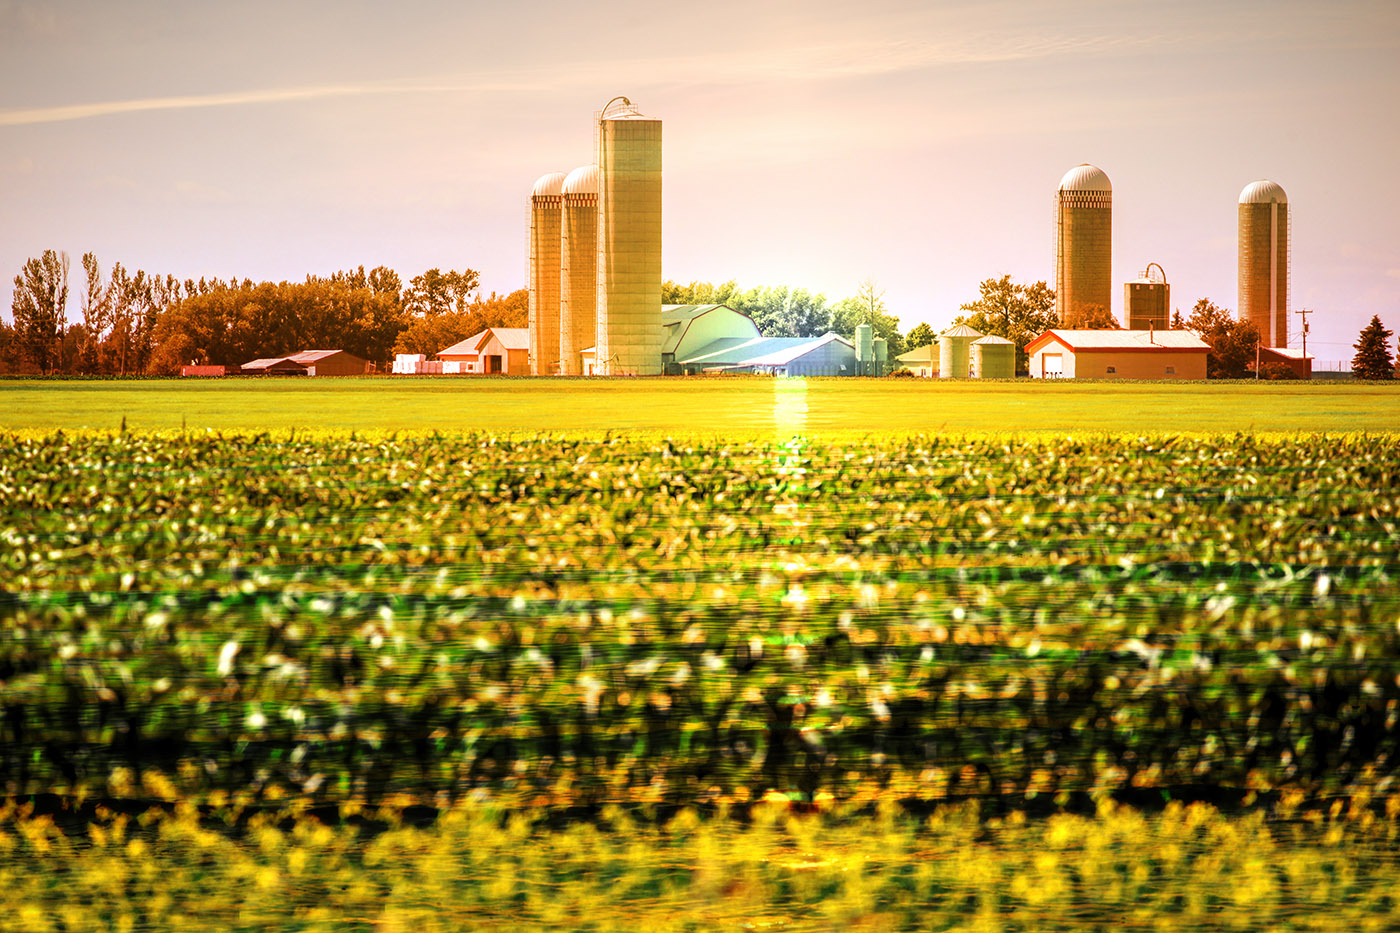 Modern Farmland and Agriculture Real Estate Stock Image